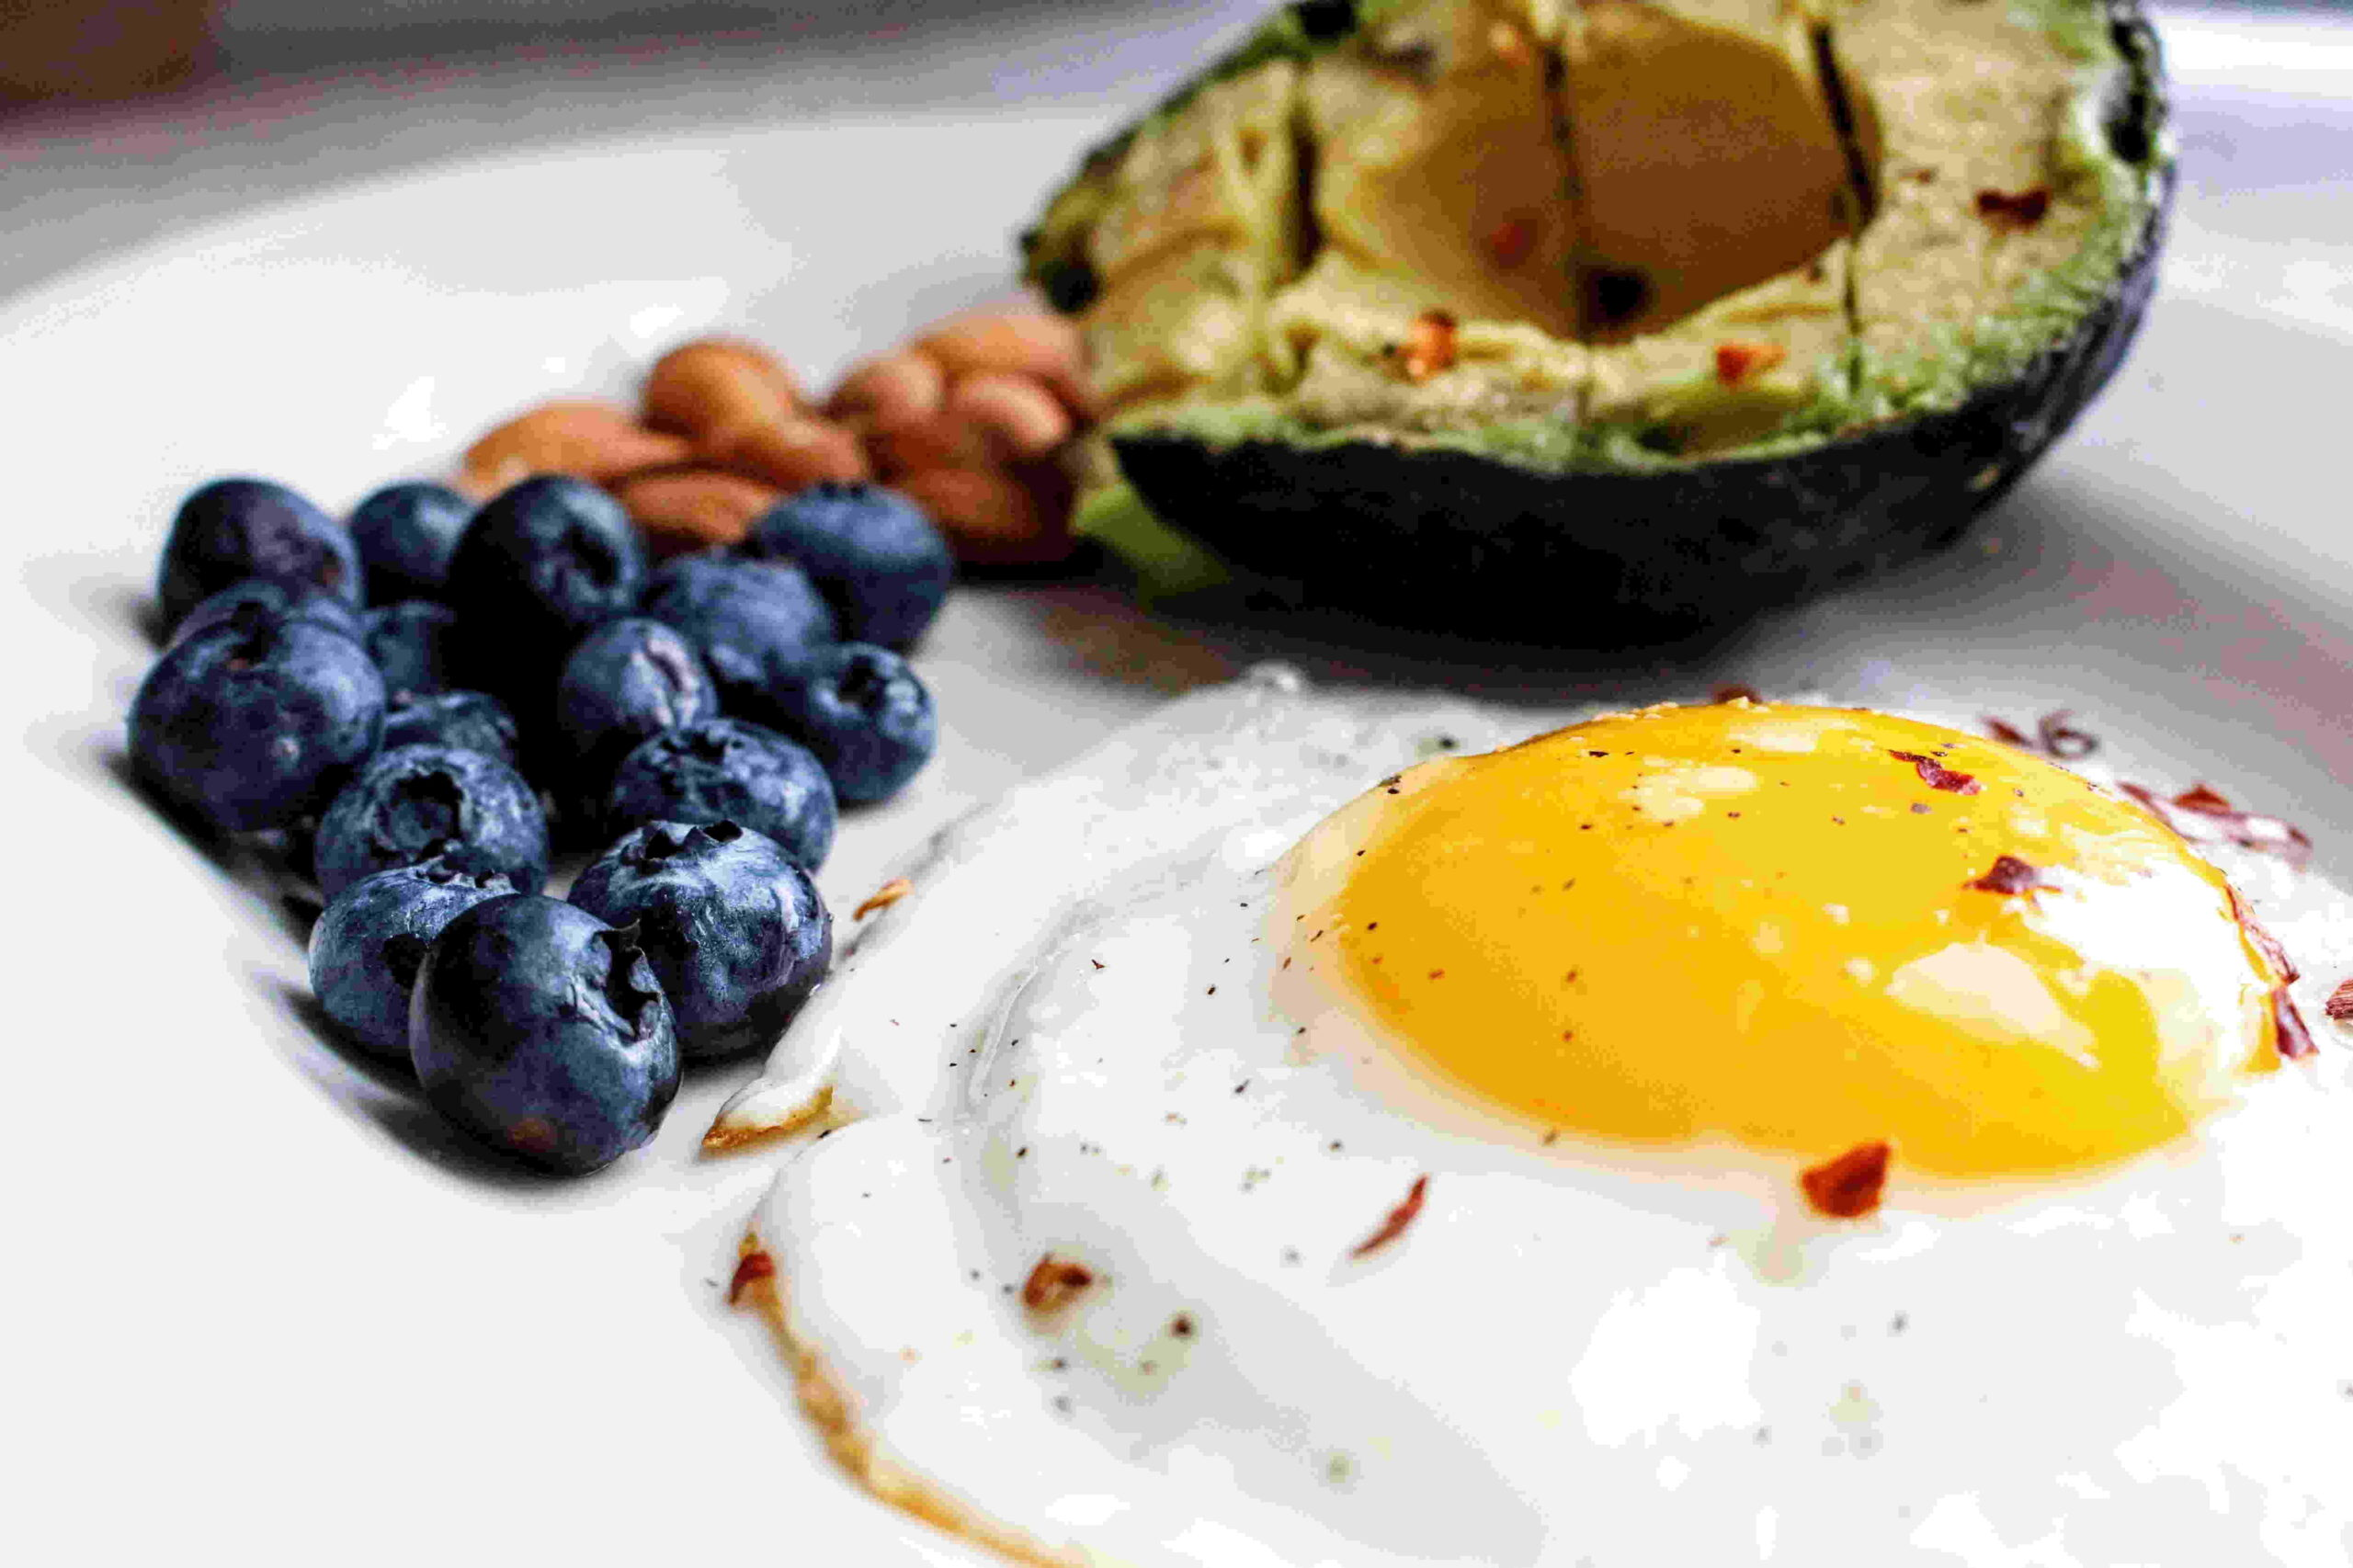 Ketogenic diet benefits, meal plans